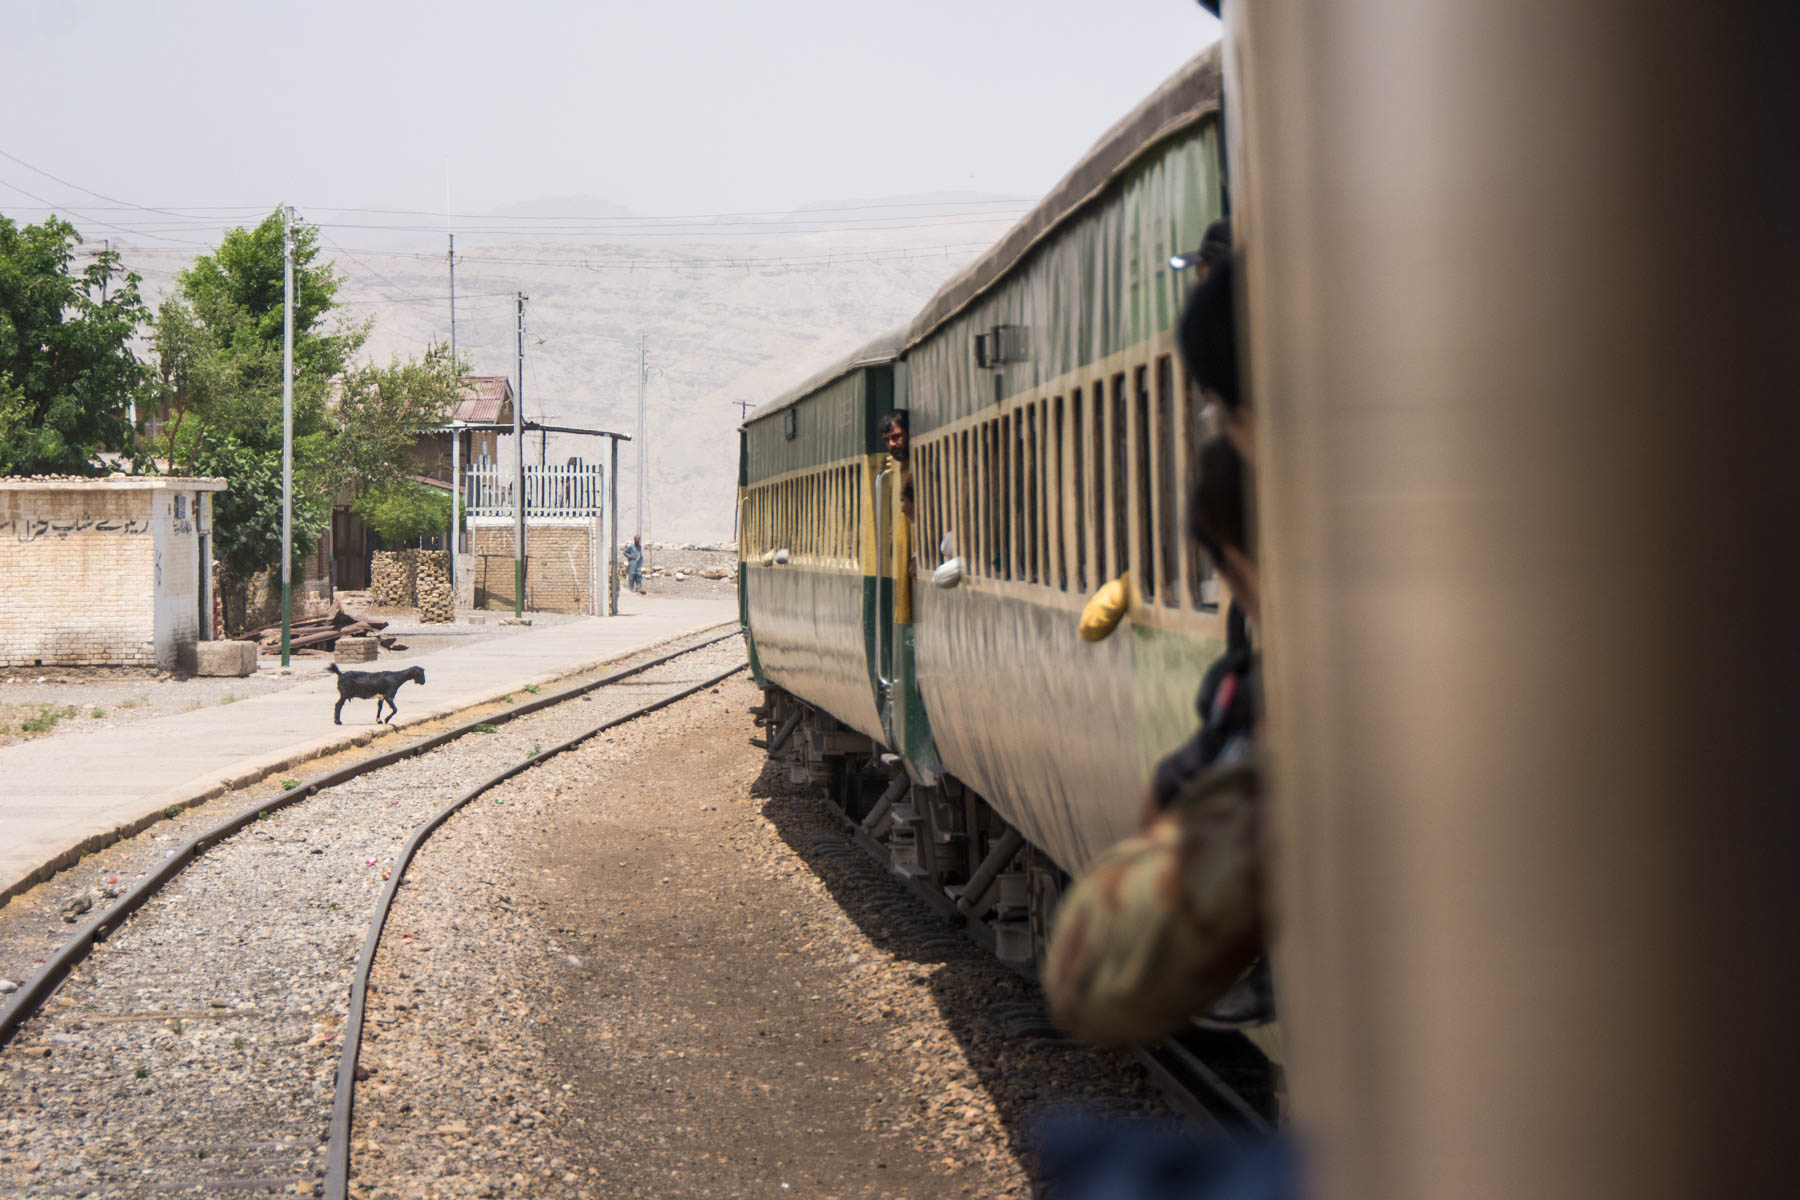 First timer's guide to train travel in Pakistan | Lost With Purpose